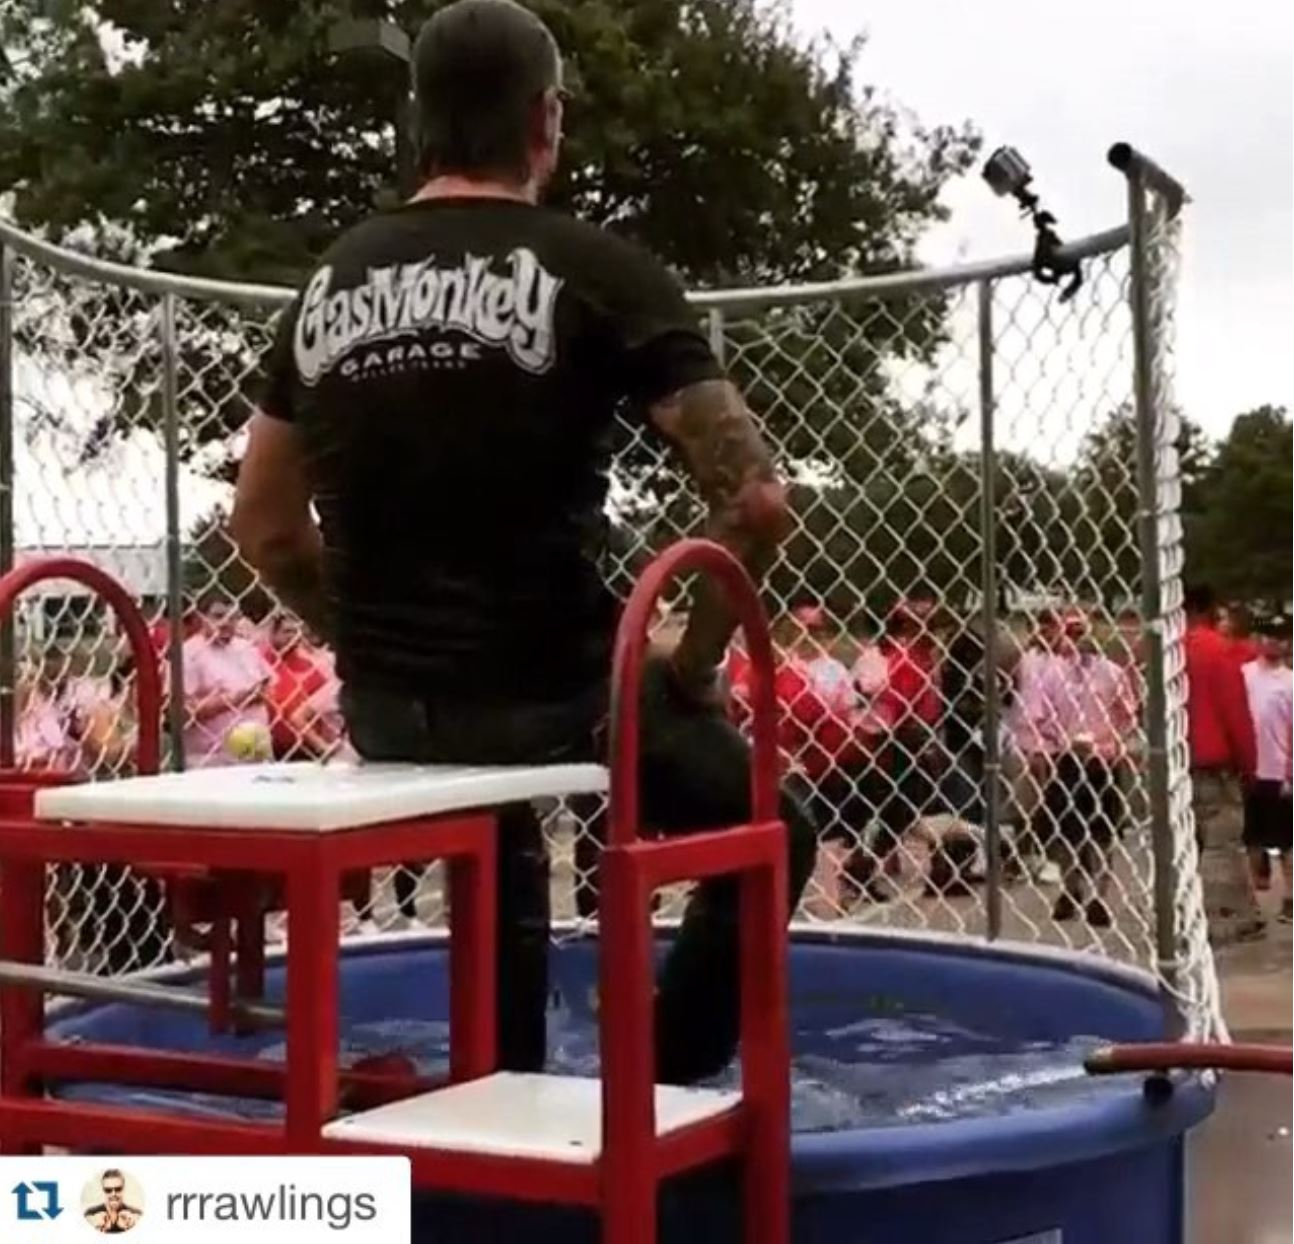 Dunking Booth Fundraiser with Richard Rawlings of Gas Monkey Garage